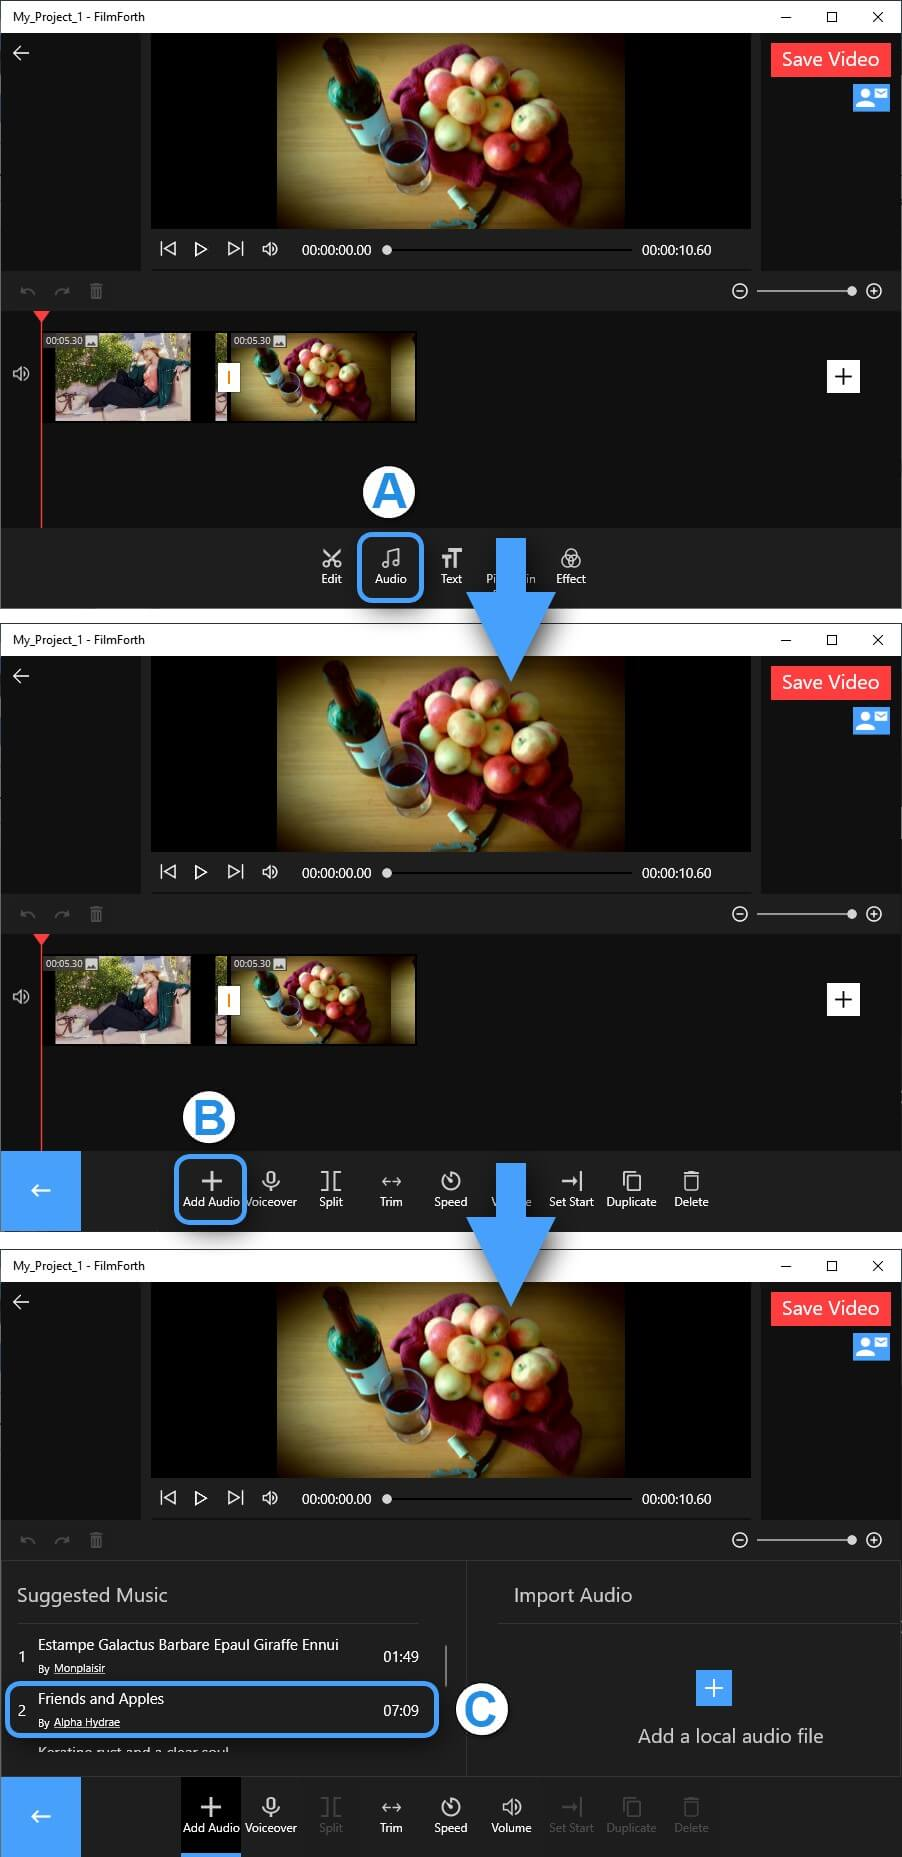 Add Audio from the FilmForth Library